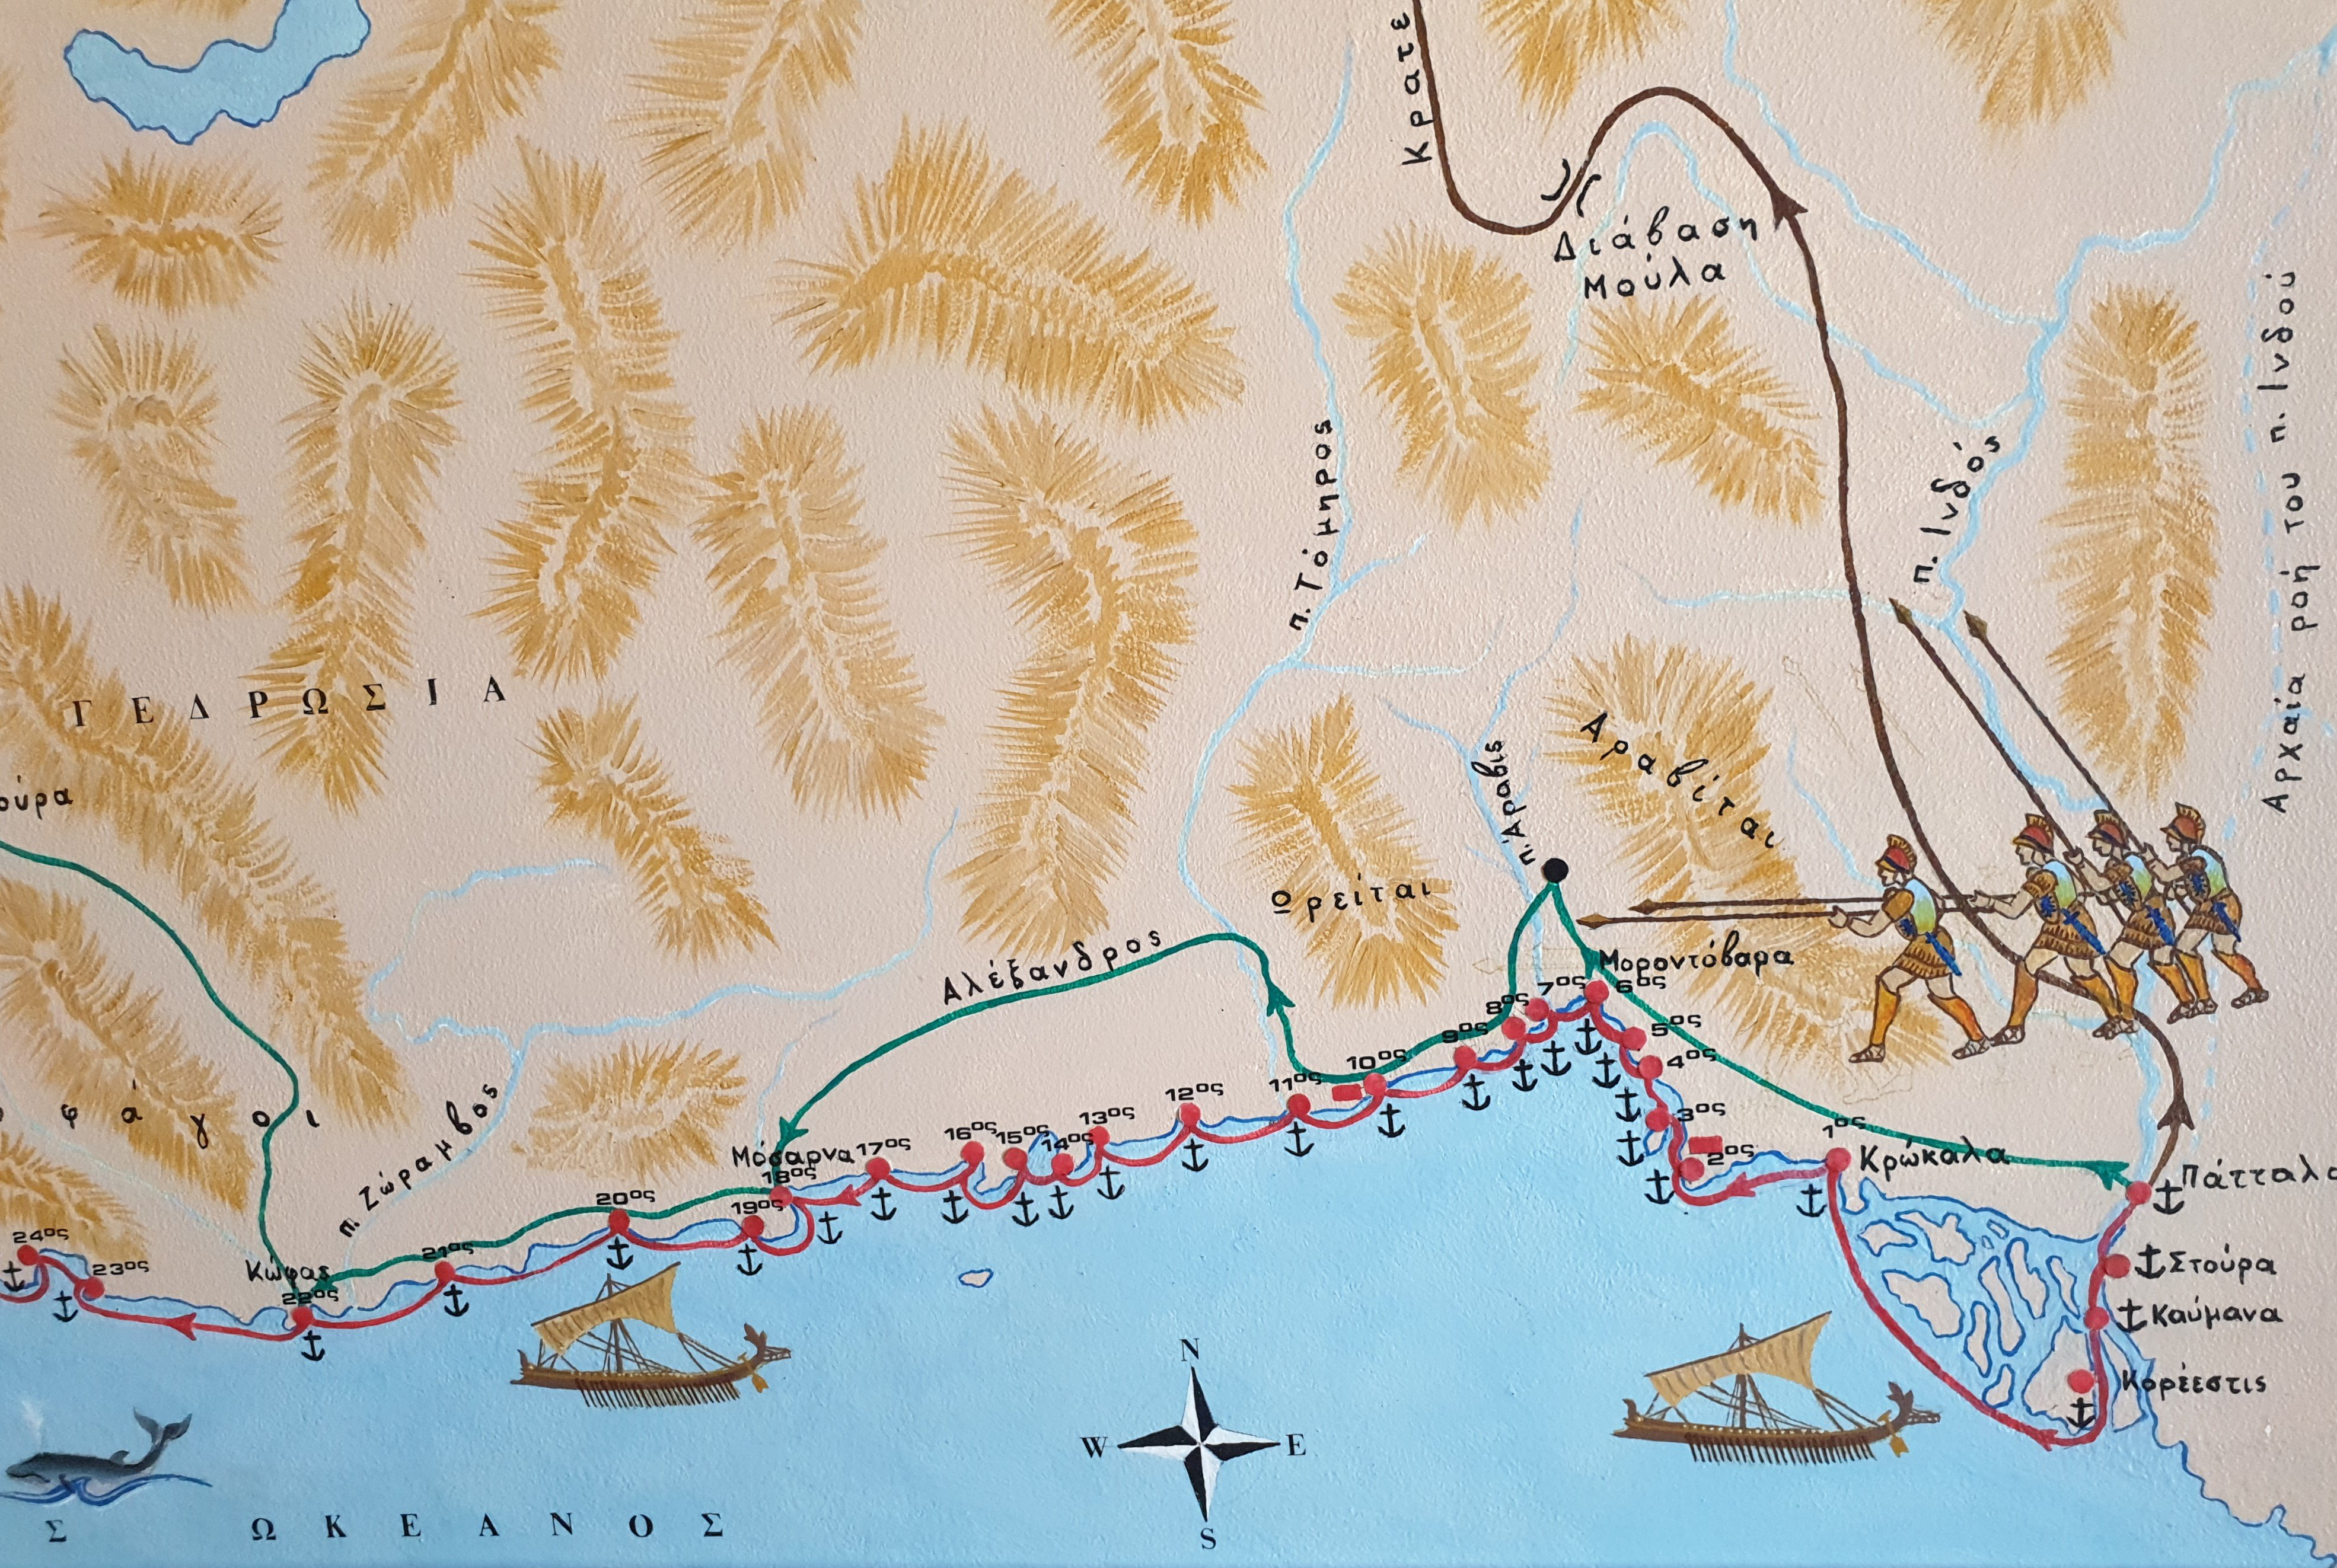 Map showing coastal route from Indus to Persian Gulf